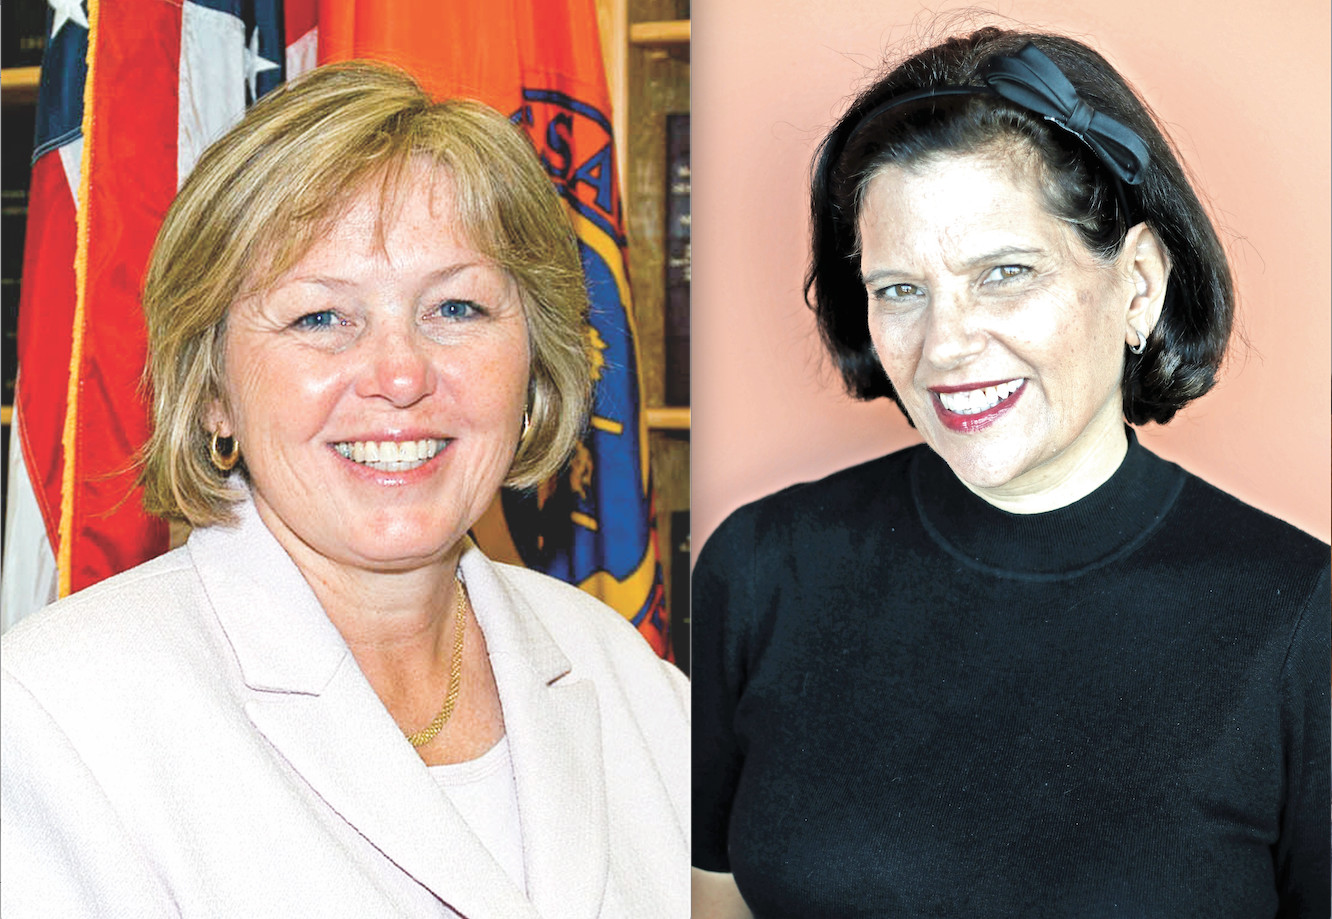 Jane Smith Fisher, right, is challenging County Legislator in the 4th L.D.